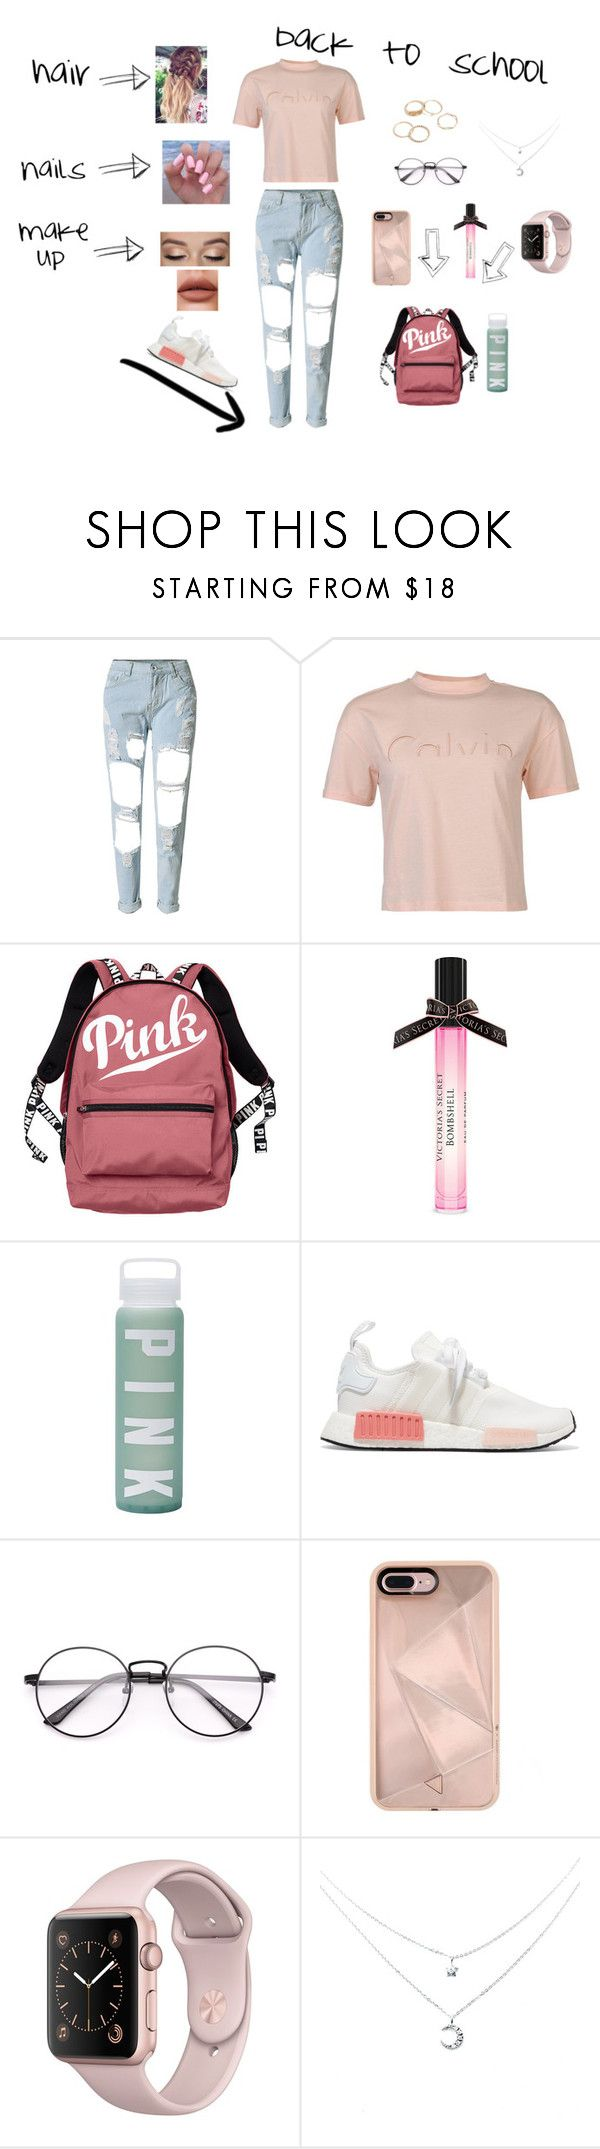 """back to school"" by natalyholly on Polyvore featuring WithChic, Calvin Klein, Victoria's Secret, adidas Originals and Rebecca Minkoff"